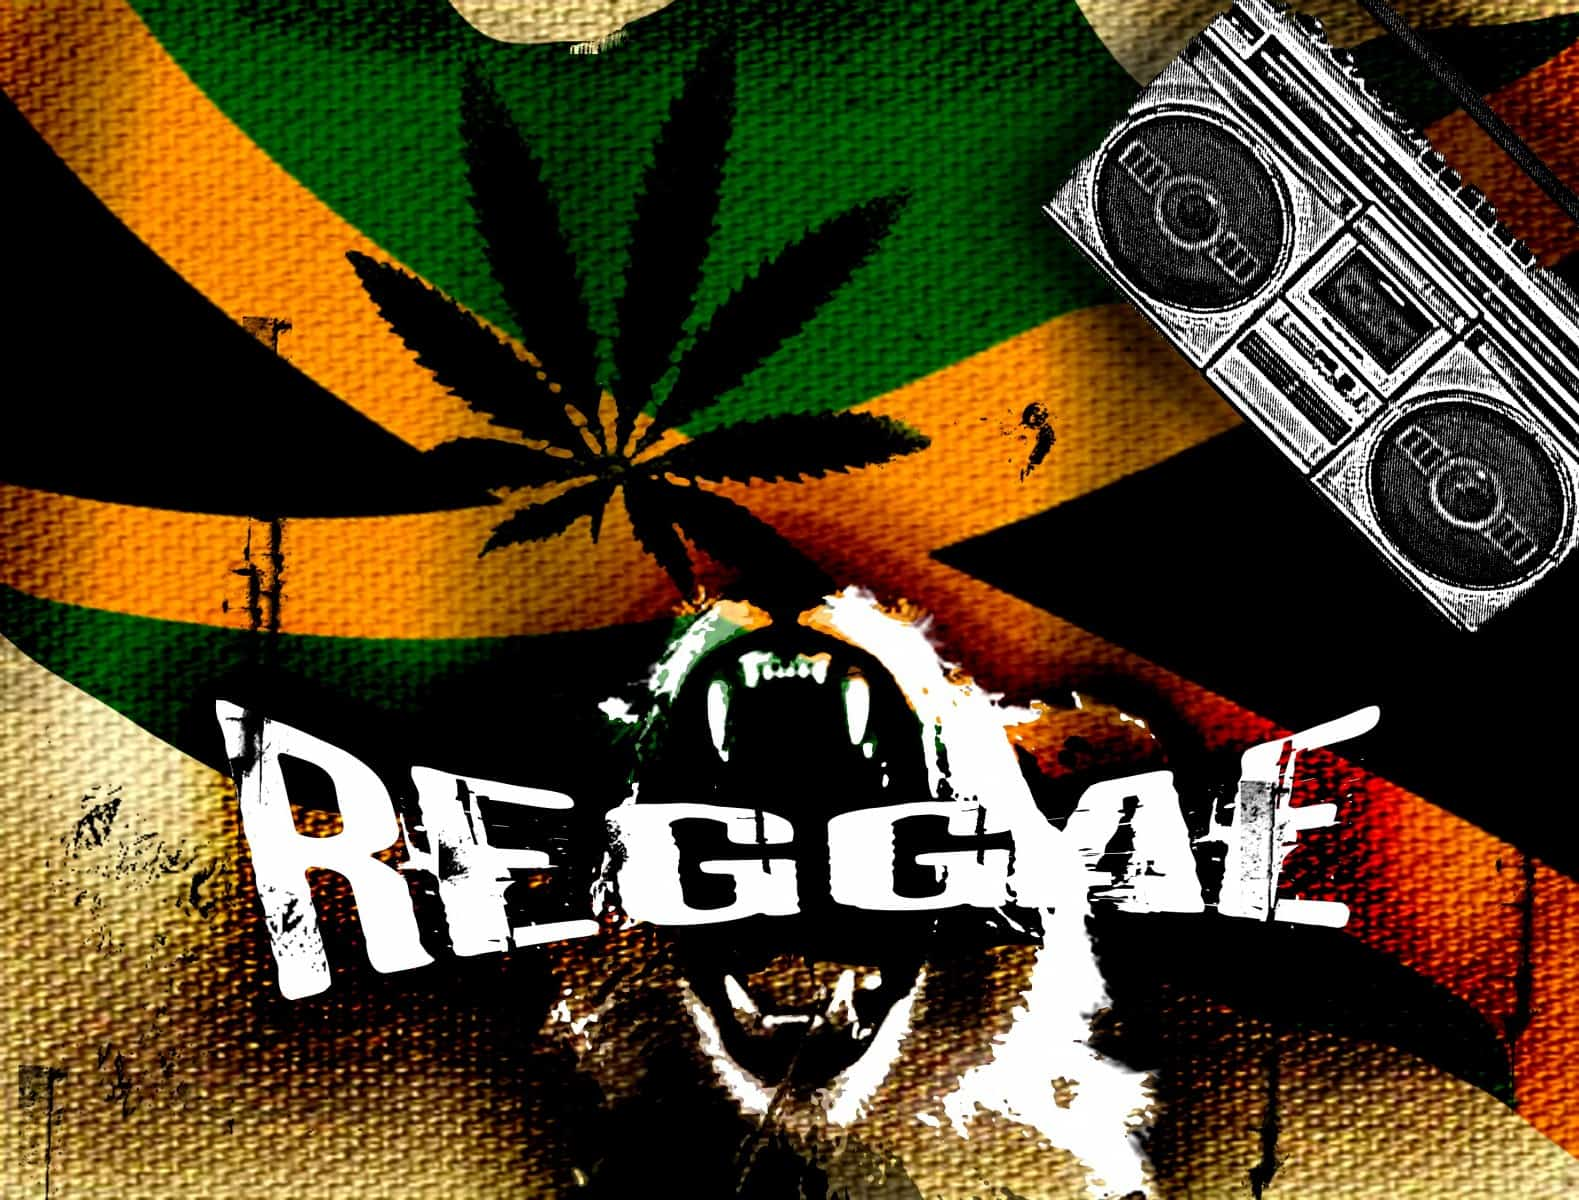 reggae music artists jamaican rasta jamaica marley bob greatest wallpapers singers dancehall song ten roots died coming